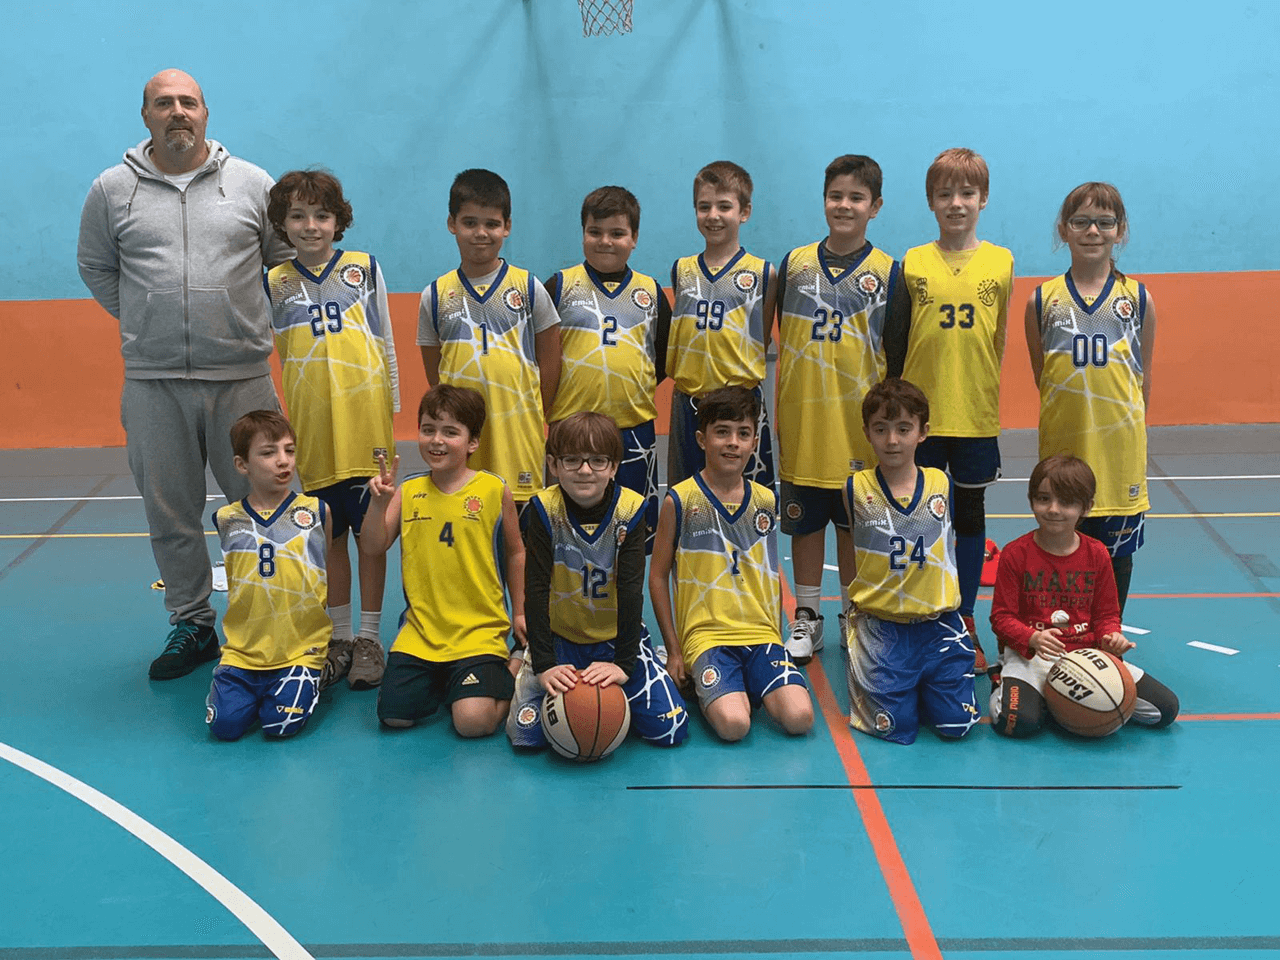 http://clubbaloncestoalcorcon.com/wp-content/uploads/2020/02/equipo-benjamin-1280.png